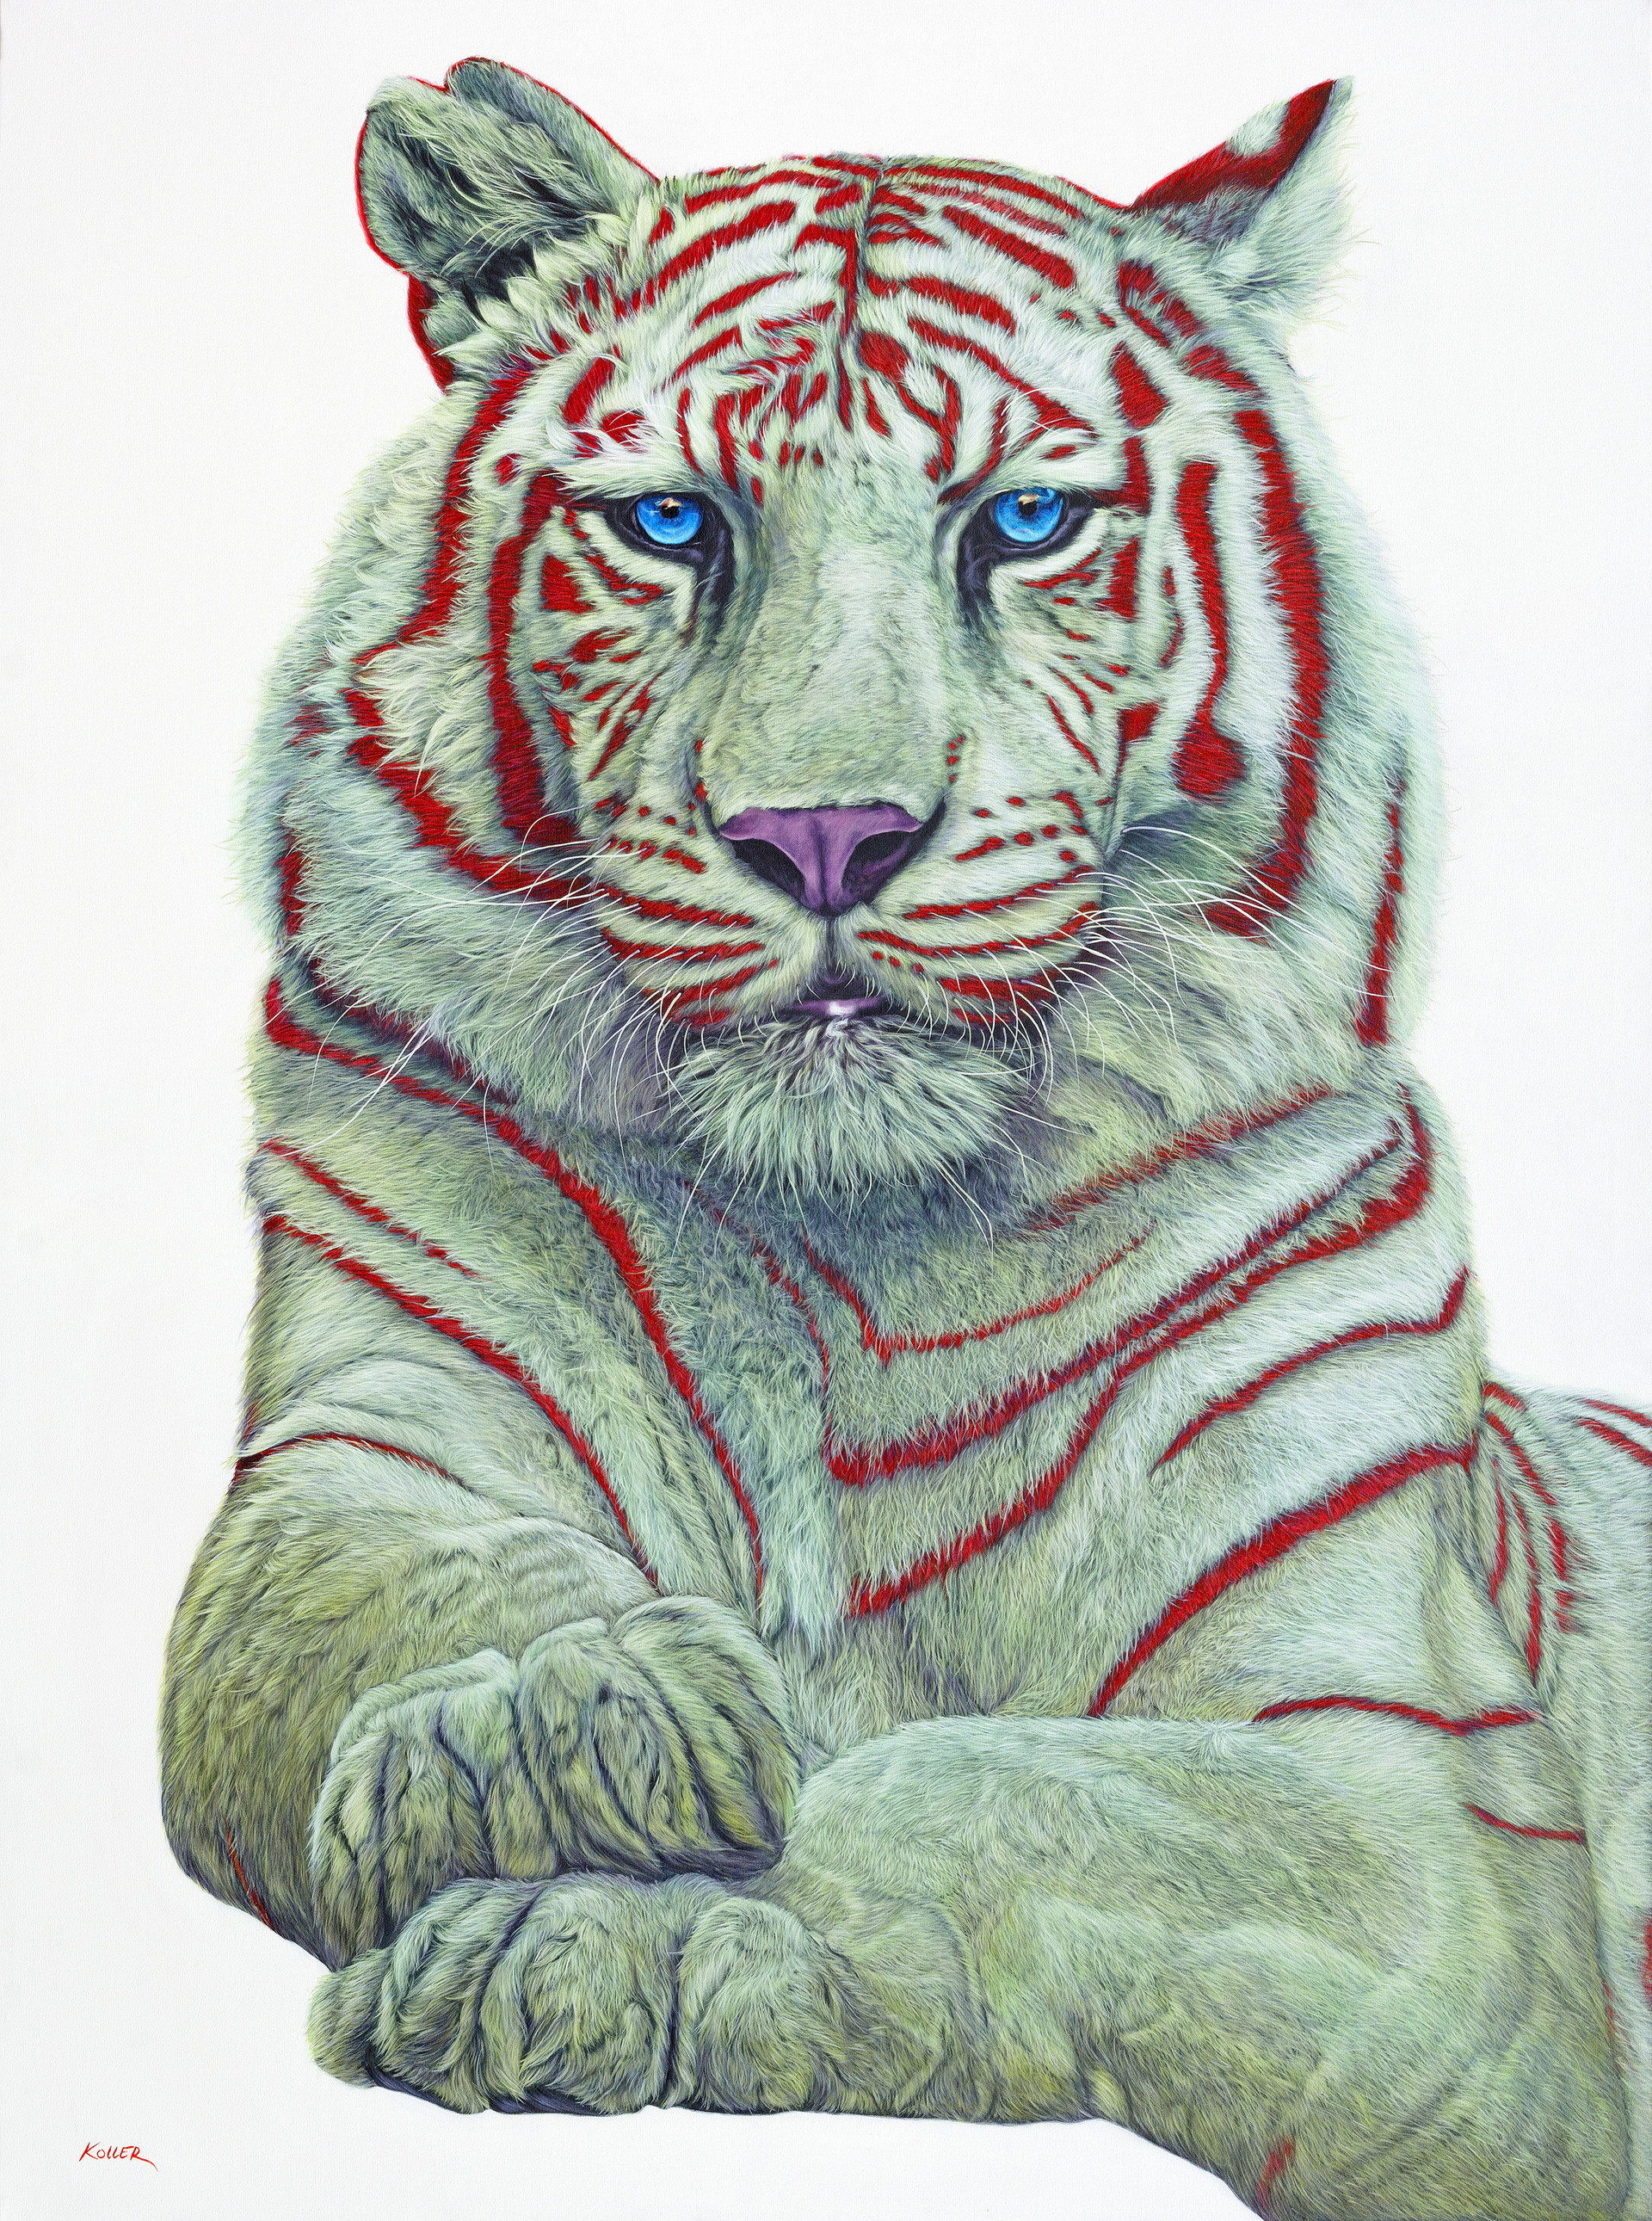 TIGER WITH RED STRIPES, 2017